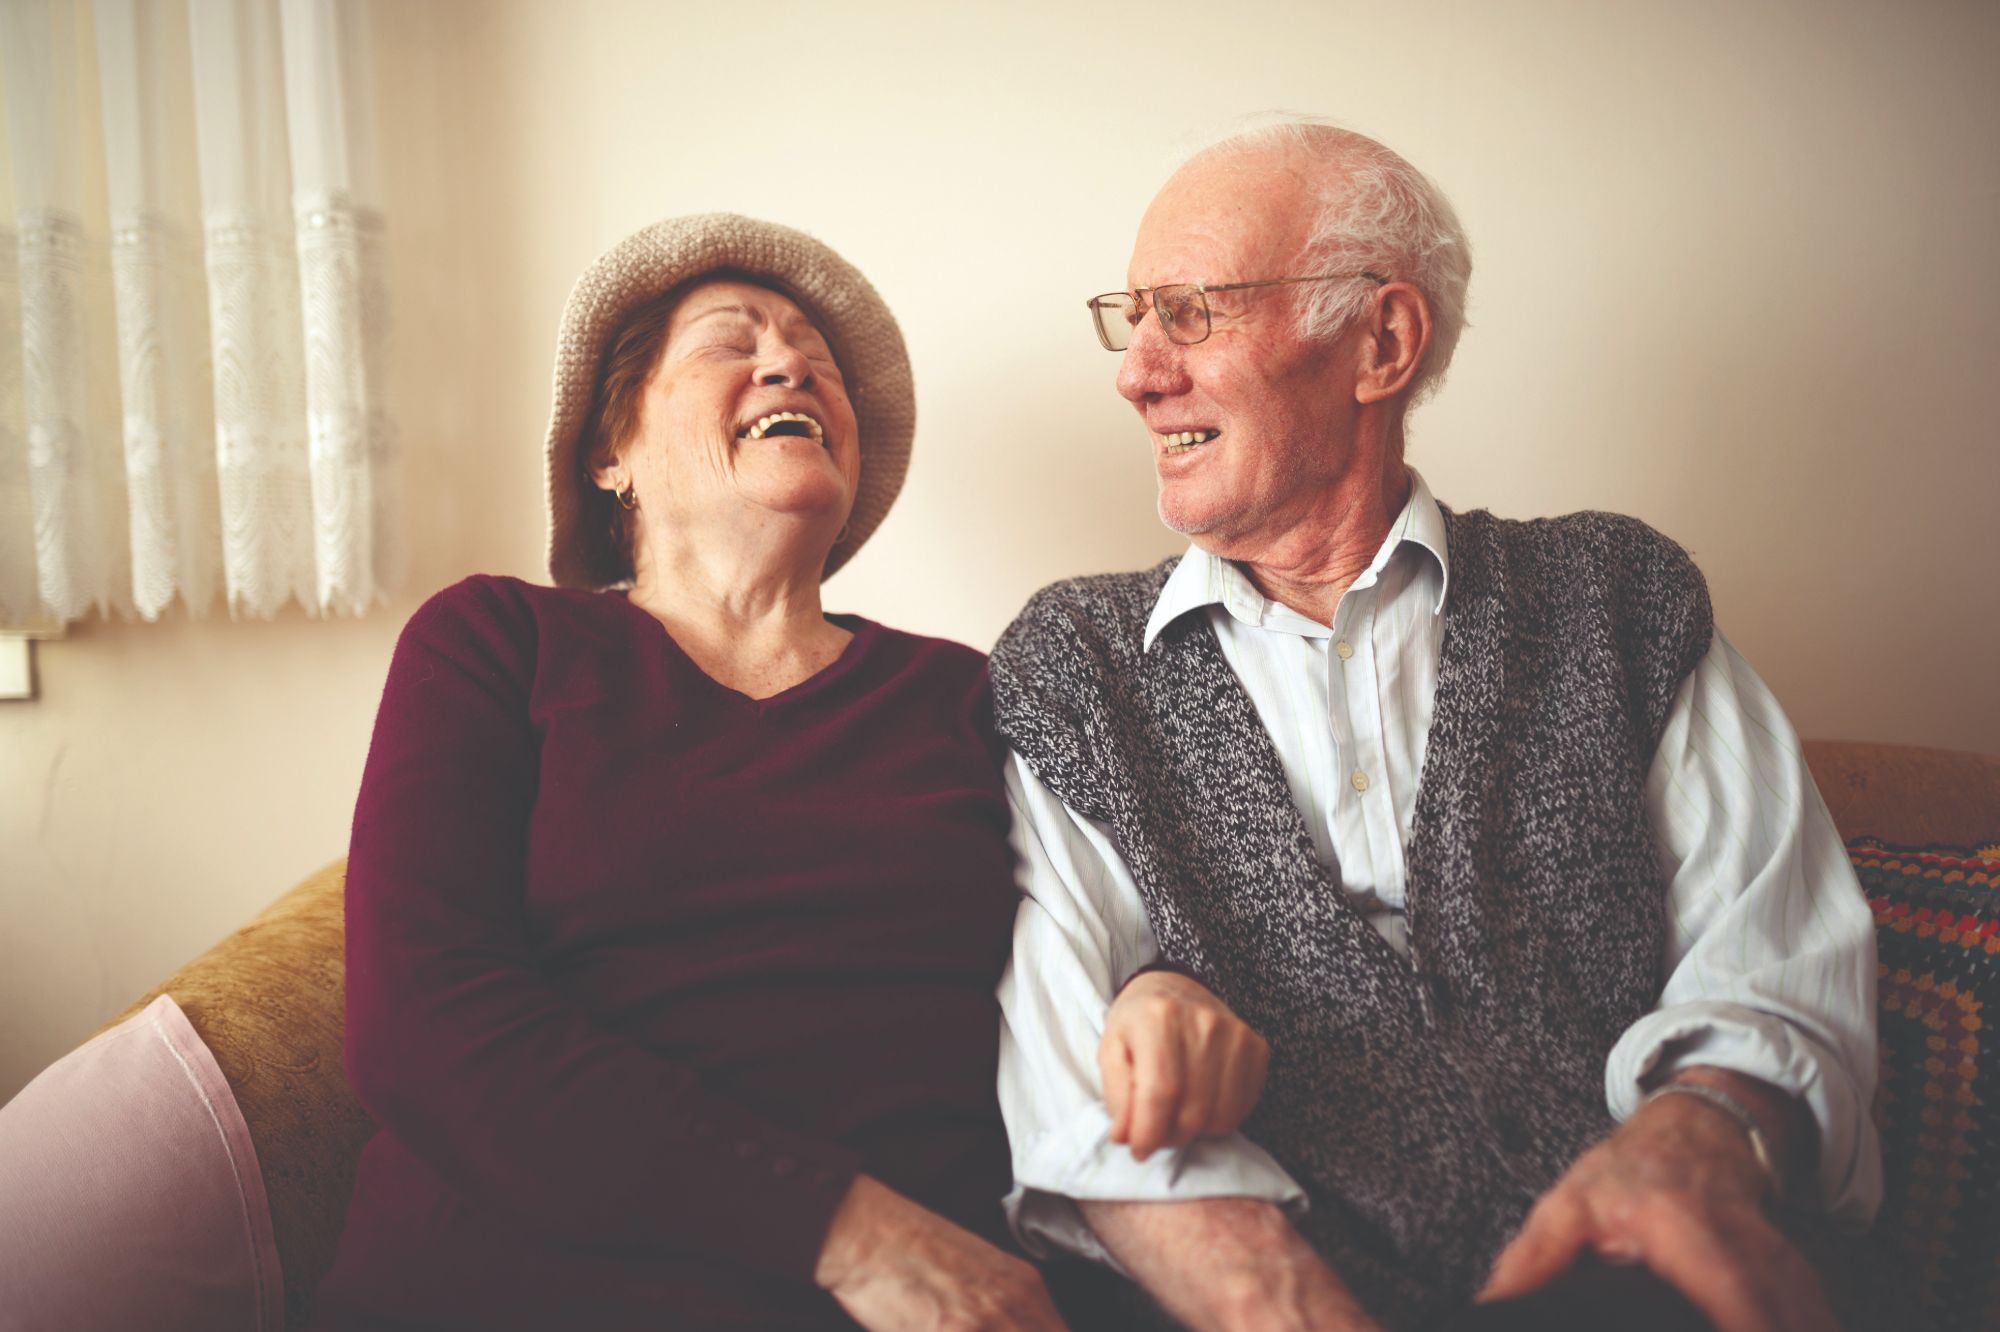 Black and white view of older man and woman sitting next to each other on couch and smiling